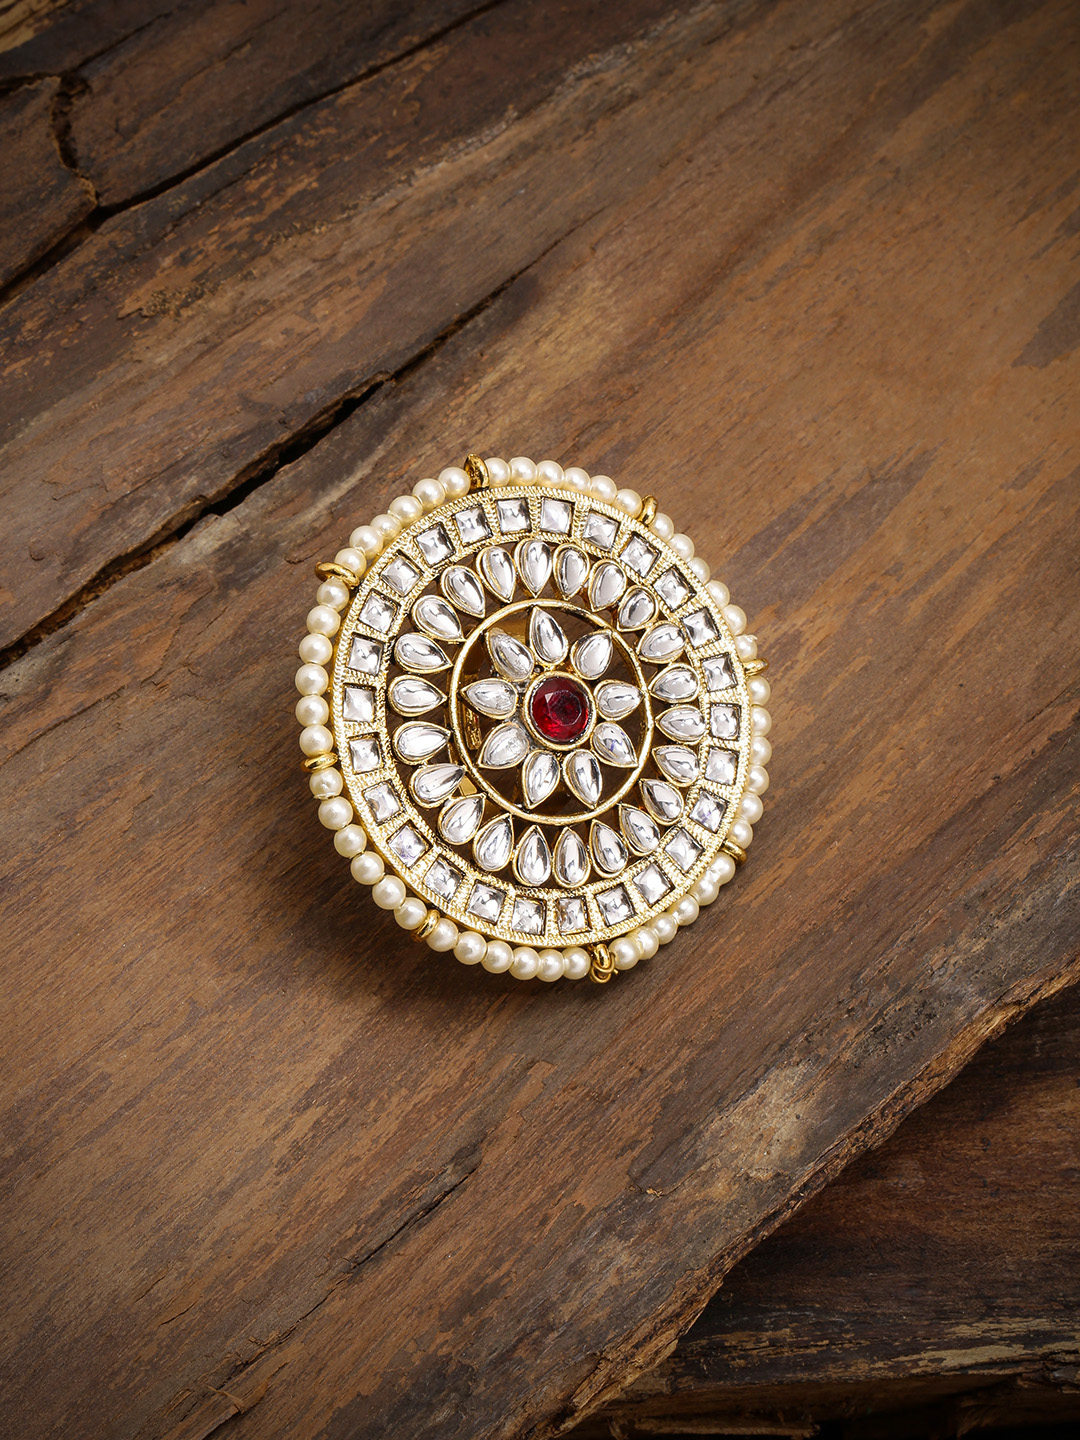 Zaveri Pearls Gold-Plated Kundan & Pearls Studded Adjustable Finger Ring Price in India